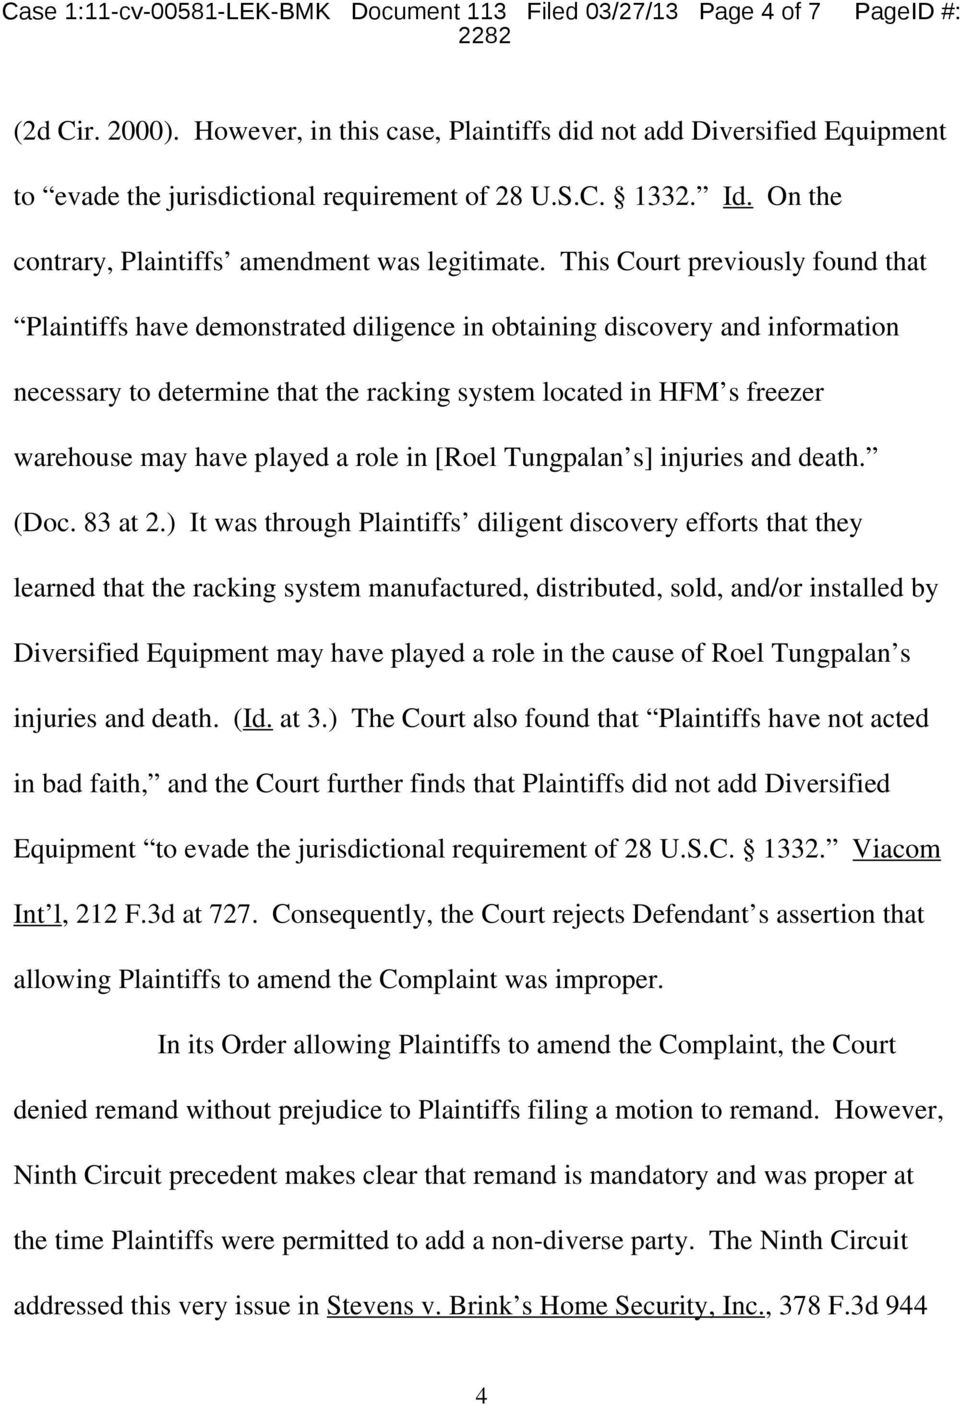 This Court previously found that Plaintiffs have demonstrated diligence in obtaining discovery and information necessary to determine that the racking system located in HFM s freezer warehouse may